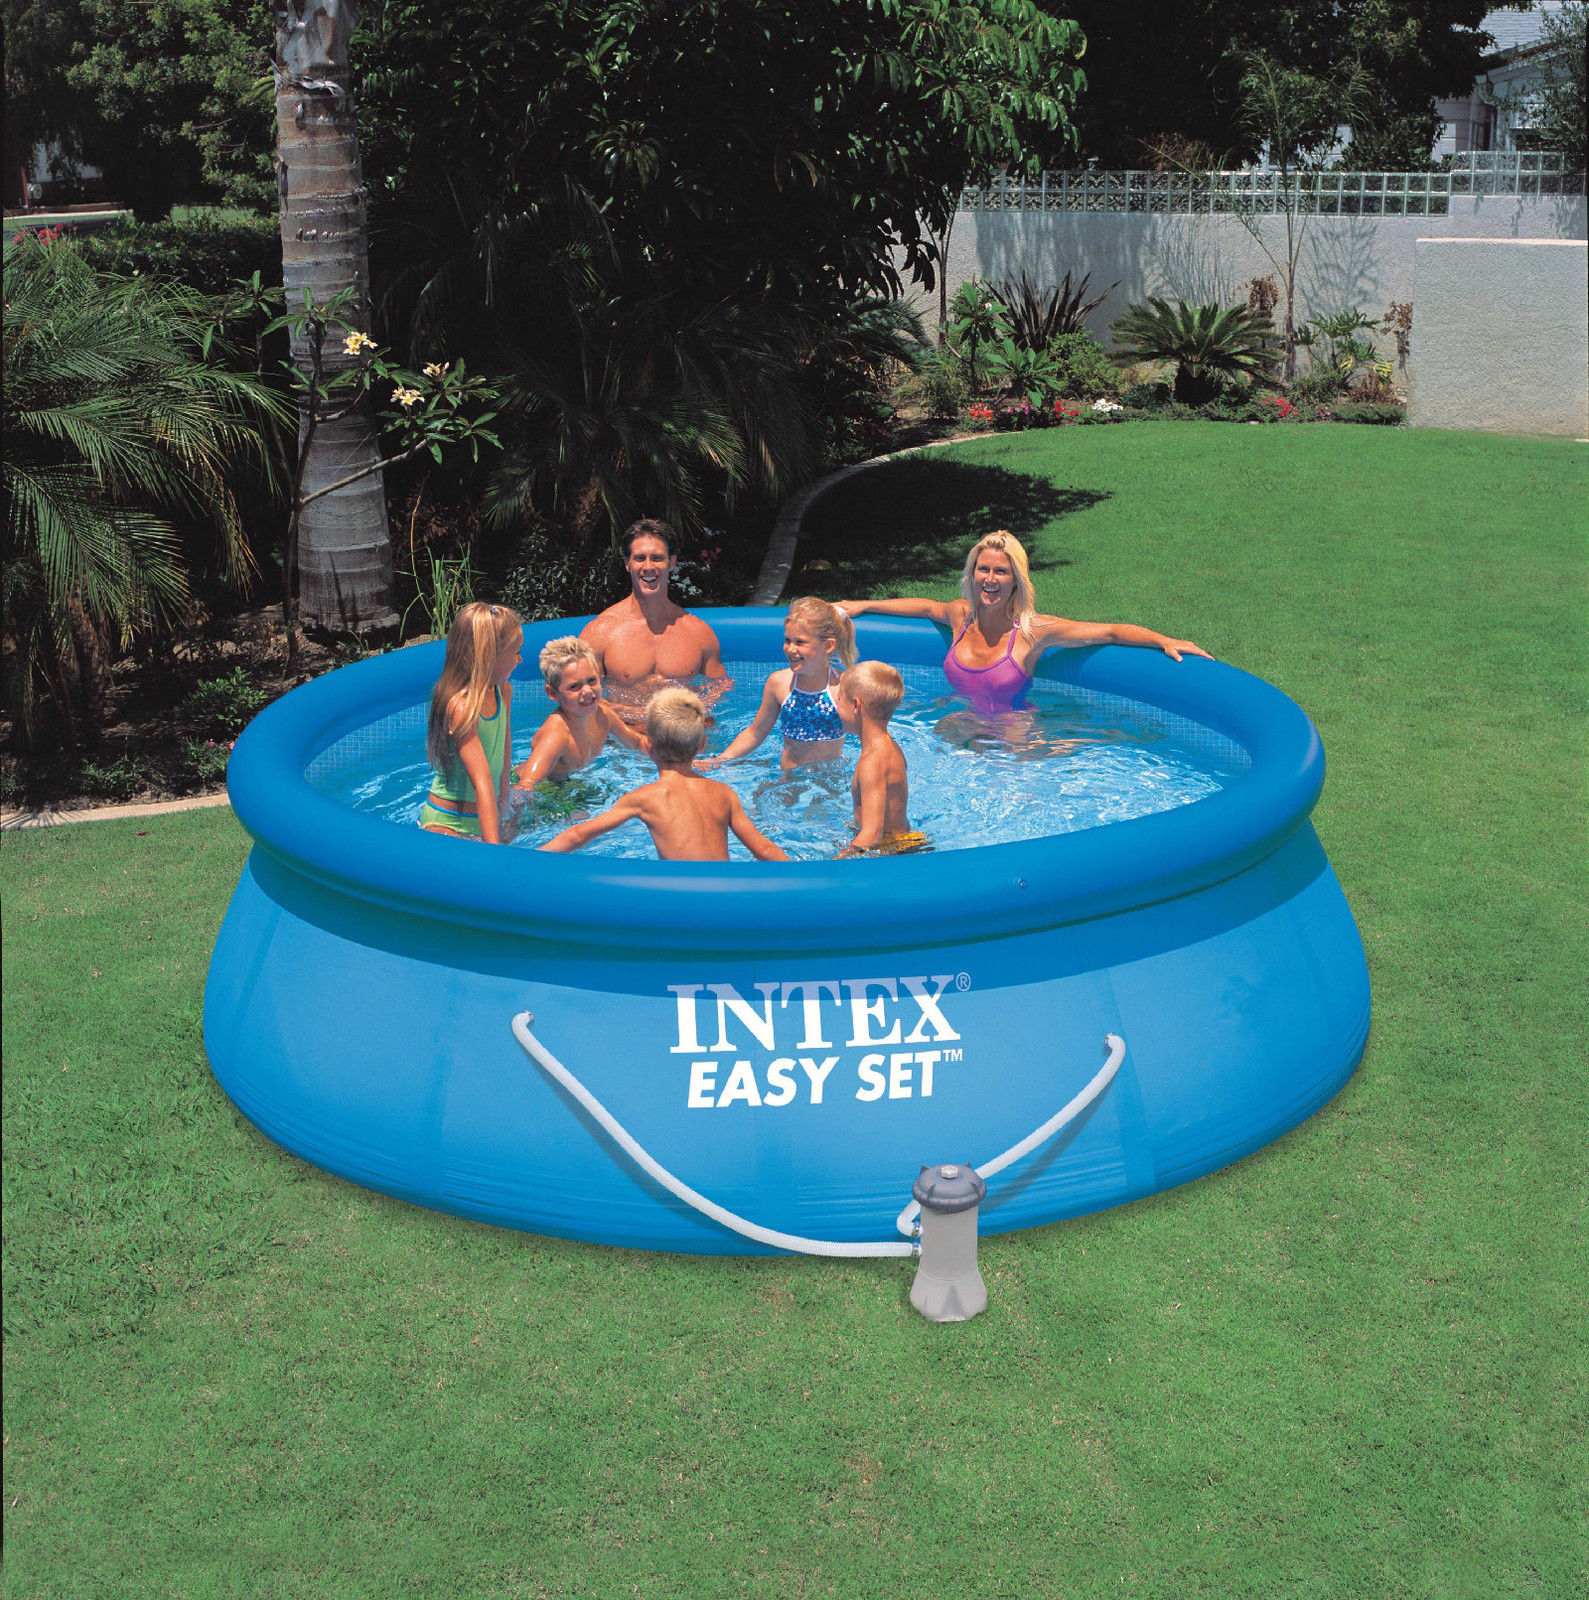 intex 13 x 33 easy set swimming pool with 530 gfci gph filter pump 28141eh